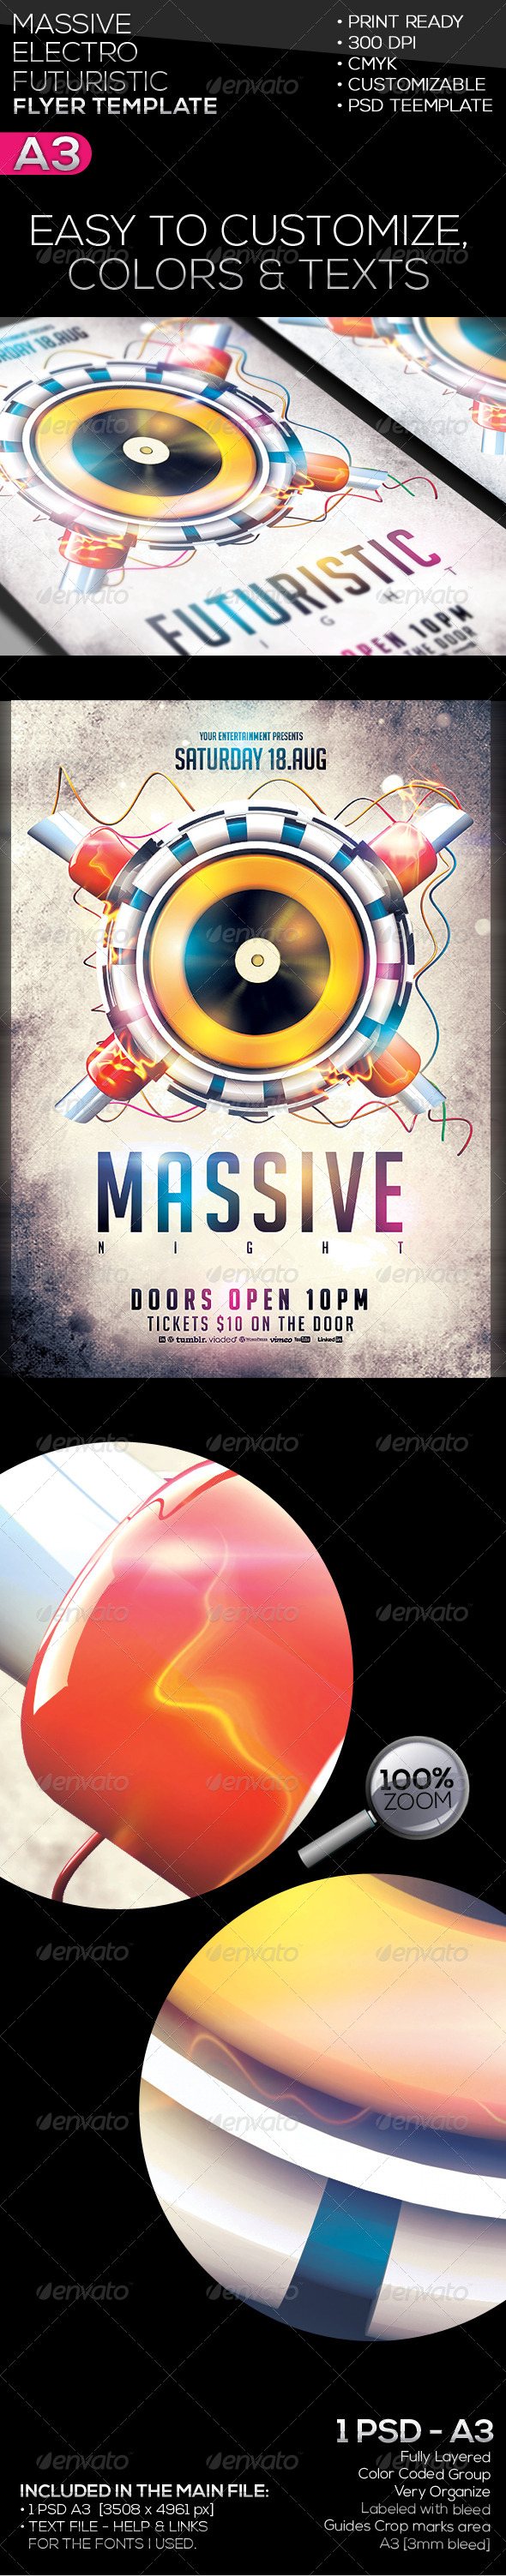 GraphicRiver Massive Futuristic Electro Flyer Template 5245881